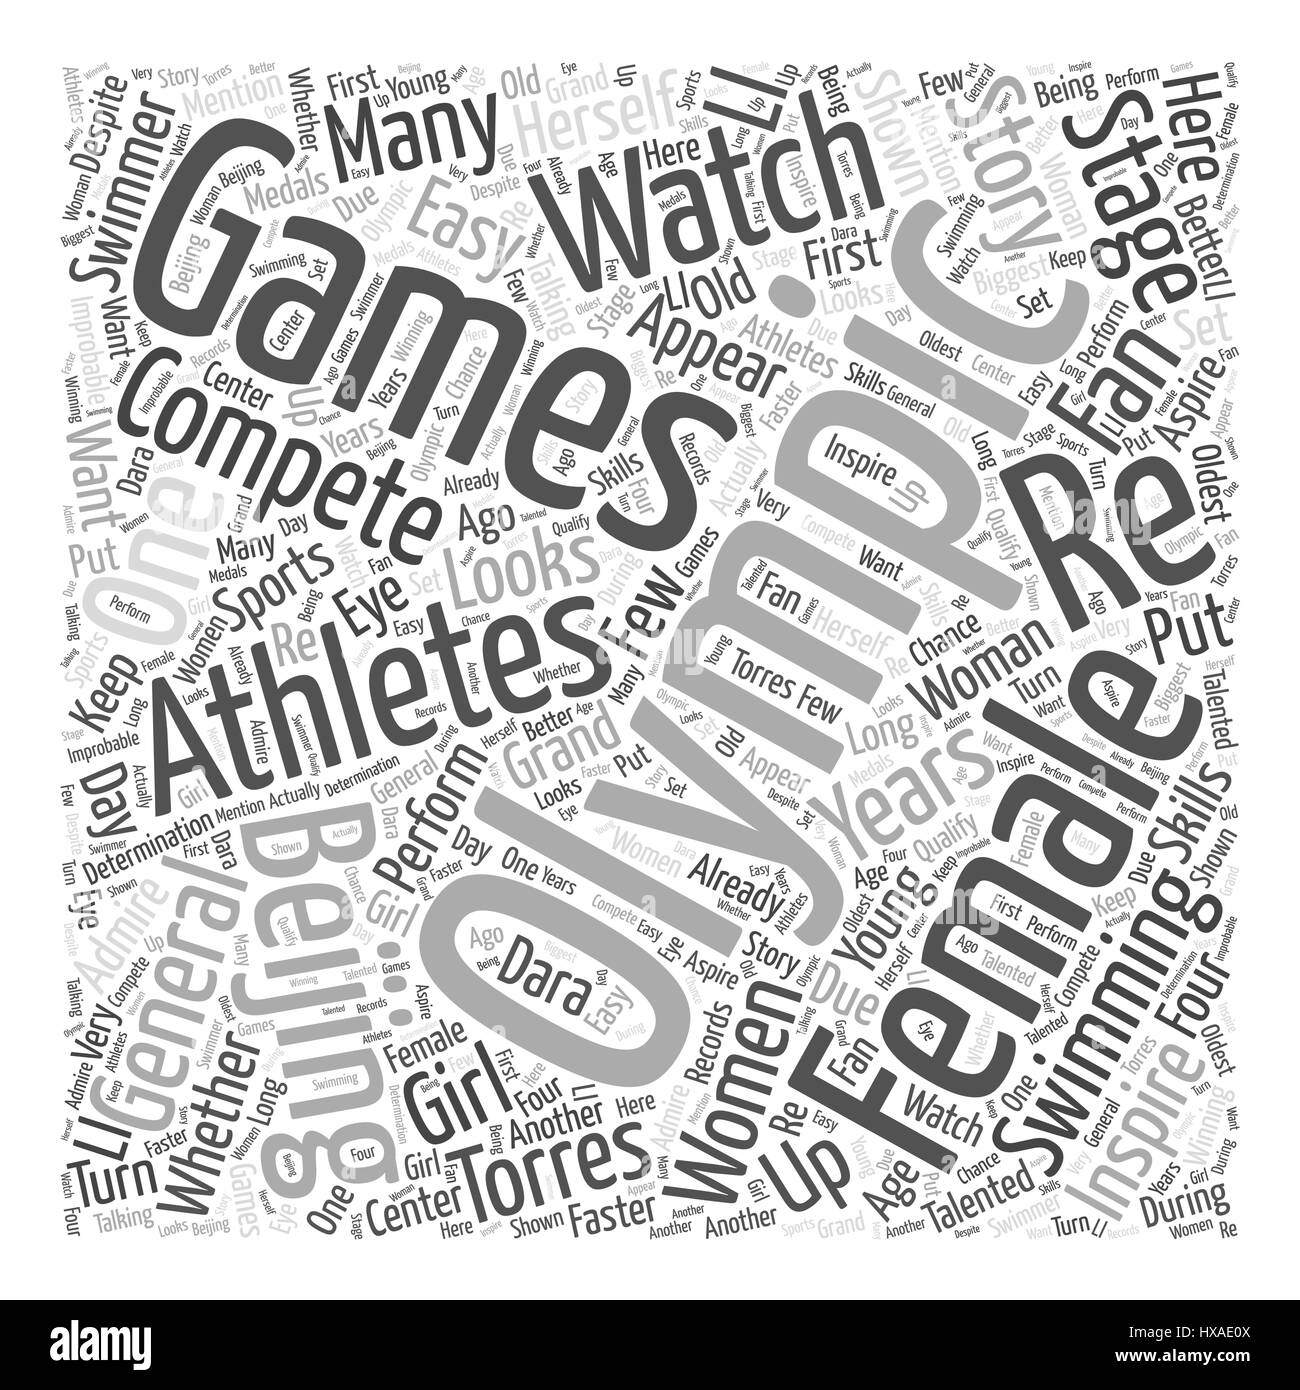 Female Athletes to Watch in the Beijing Olympics Word Cloud Concept - Stock Vector